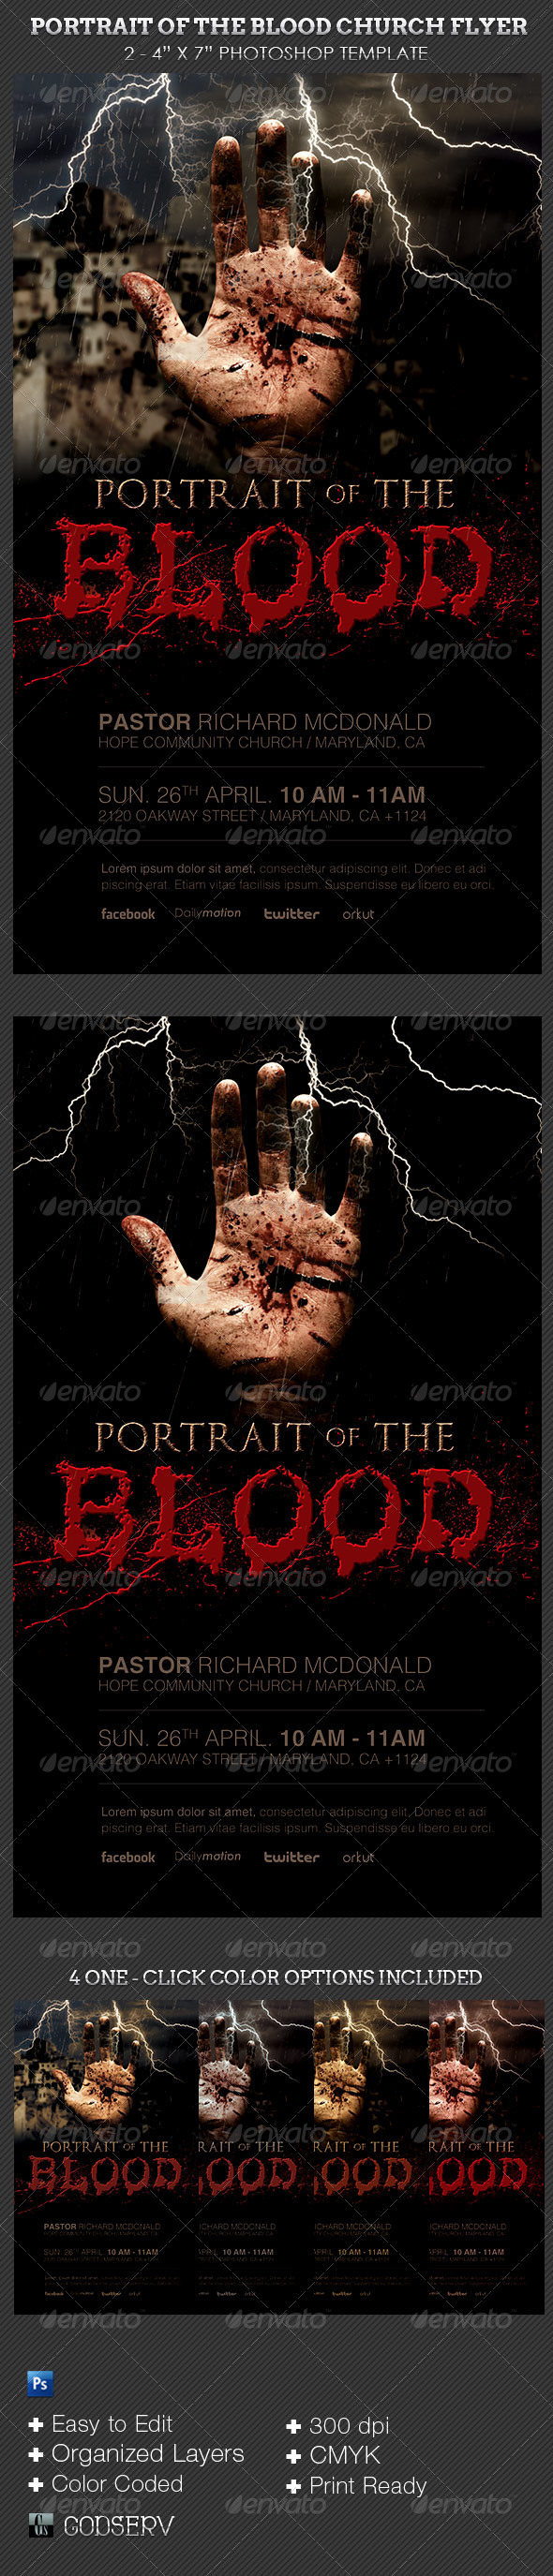 GraphicRiver Portrait of The Blood Church Flyer Template 6813716